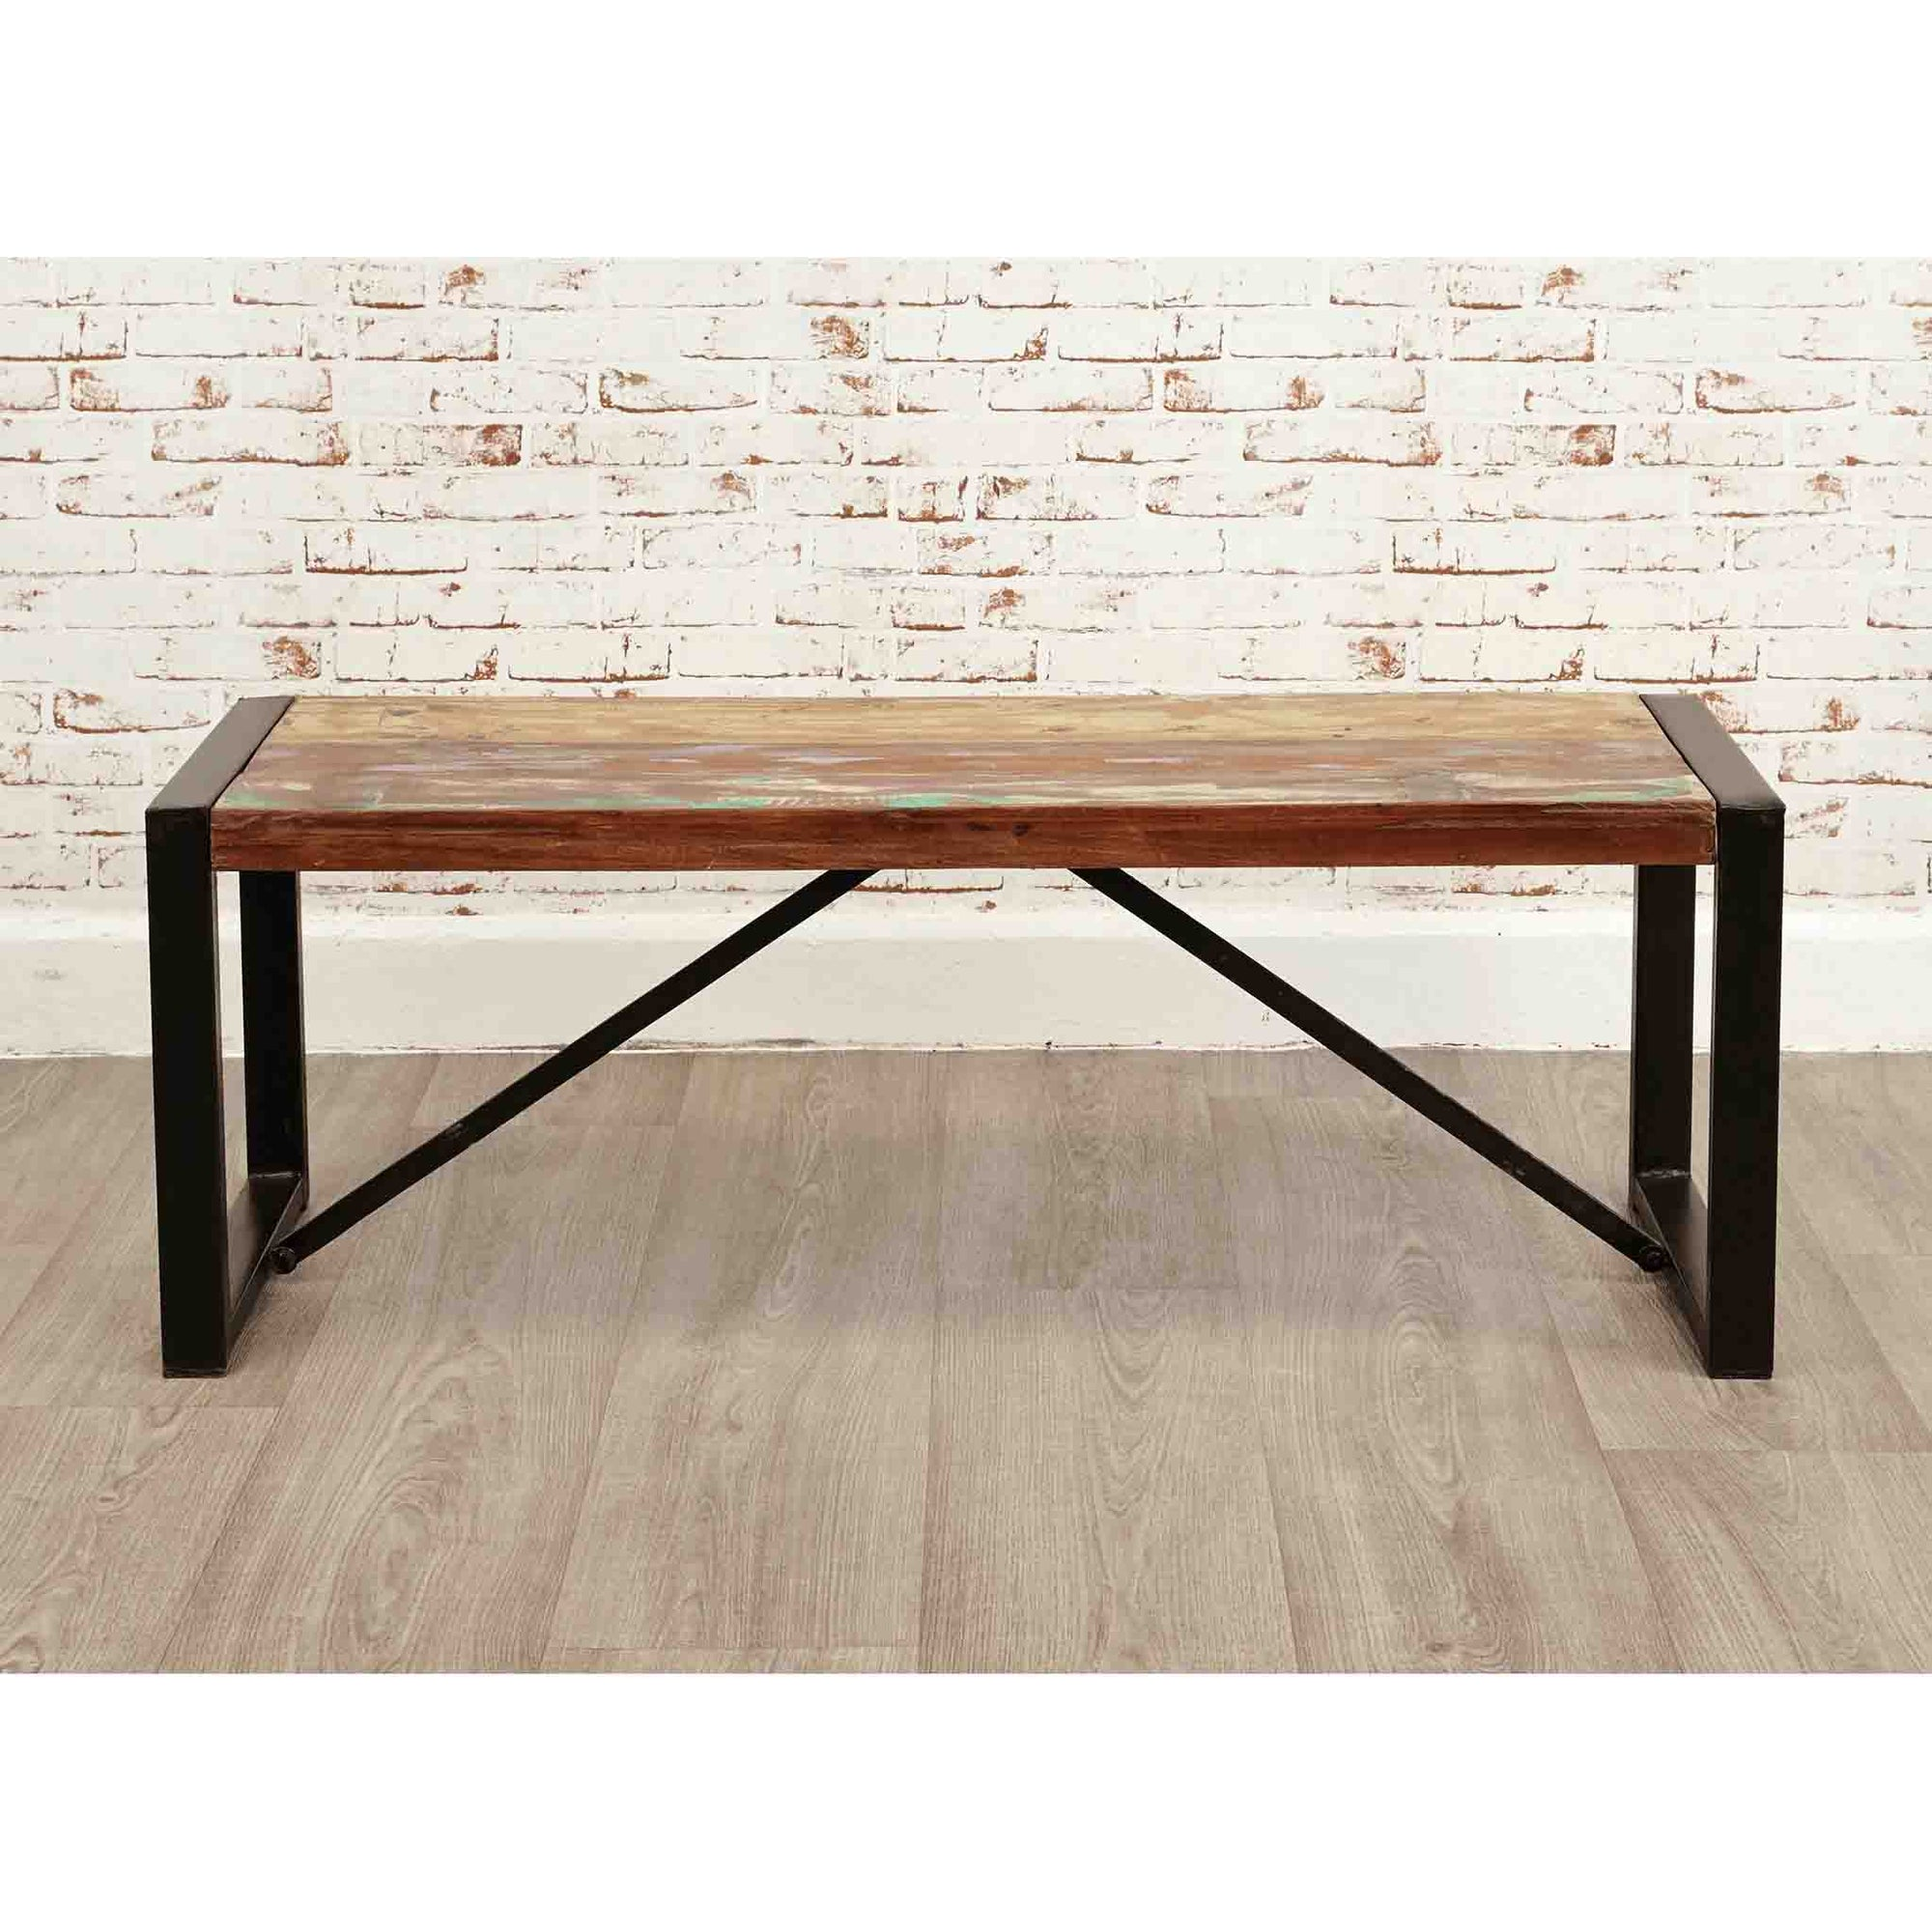 The Urban Chic Industrial Reclaimed Wood Small Dining Bench with Steel Frame from Roseland Furniture